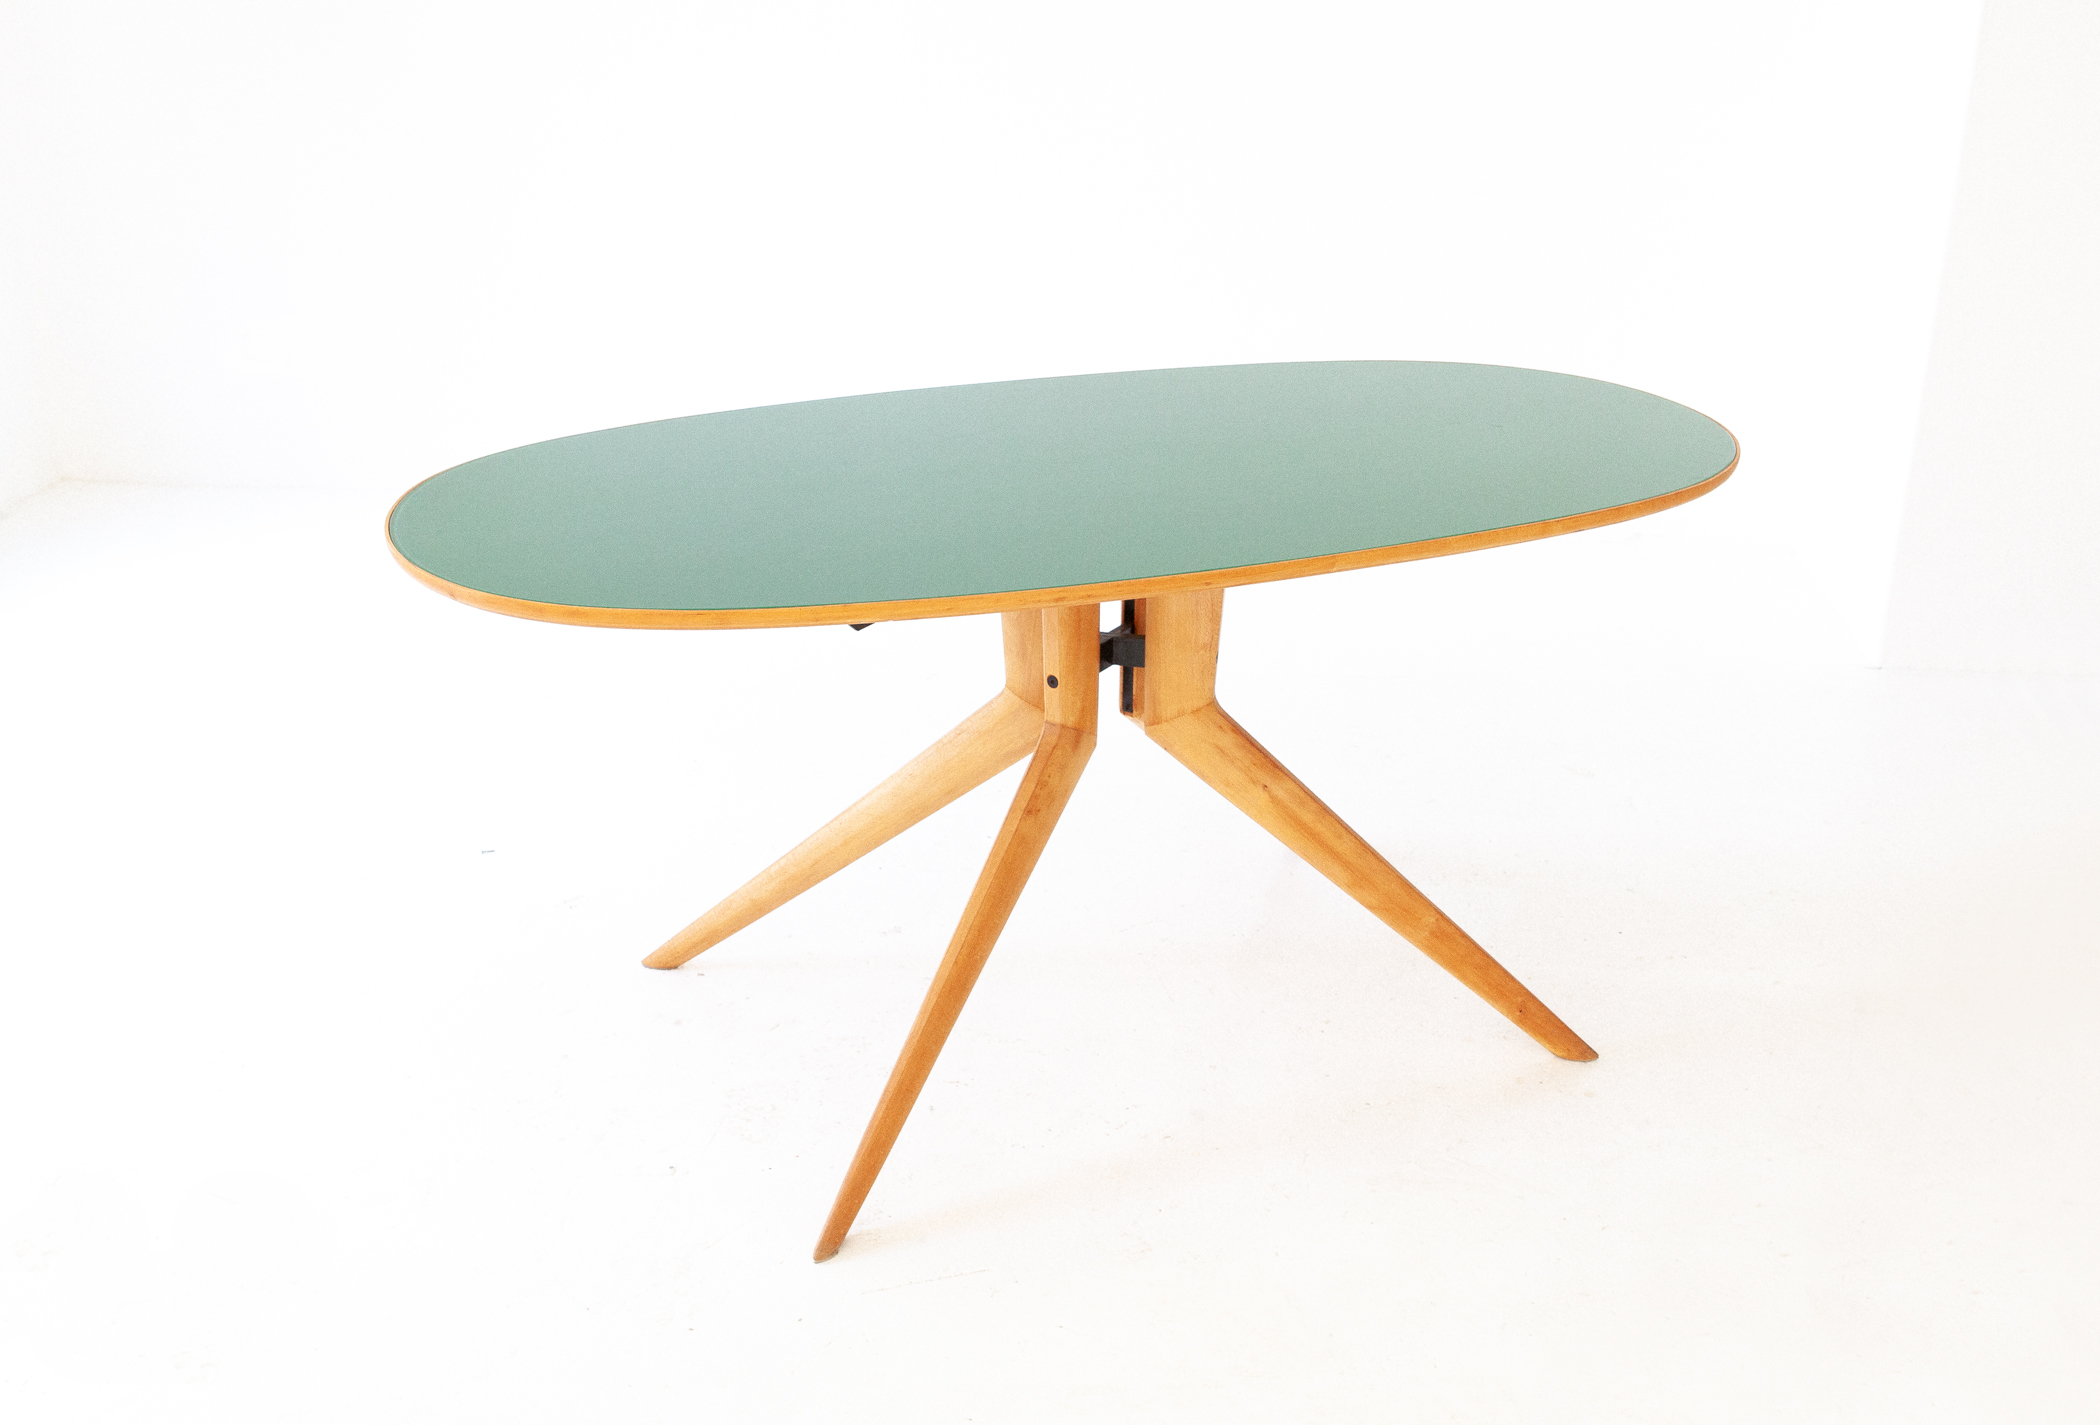 Elliptical-beec-light-gree-dining-table-8